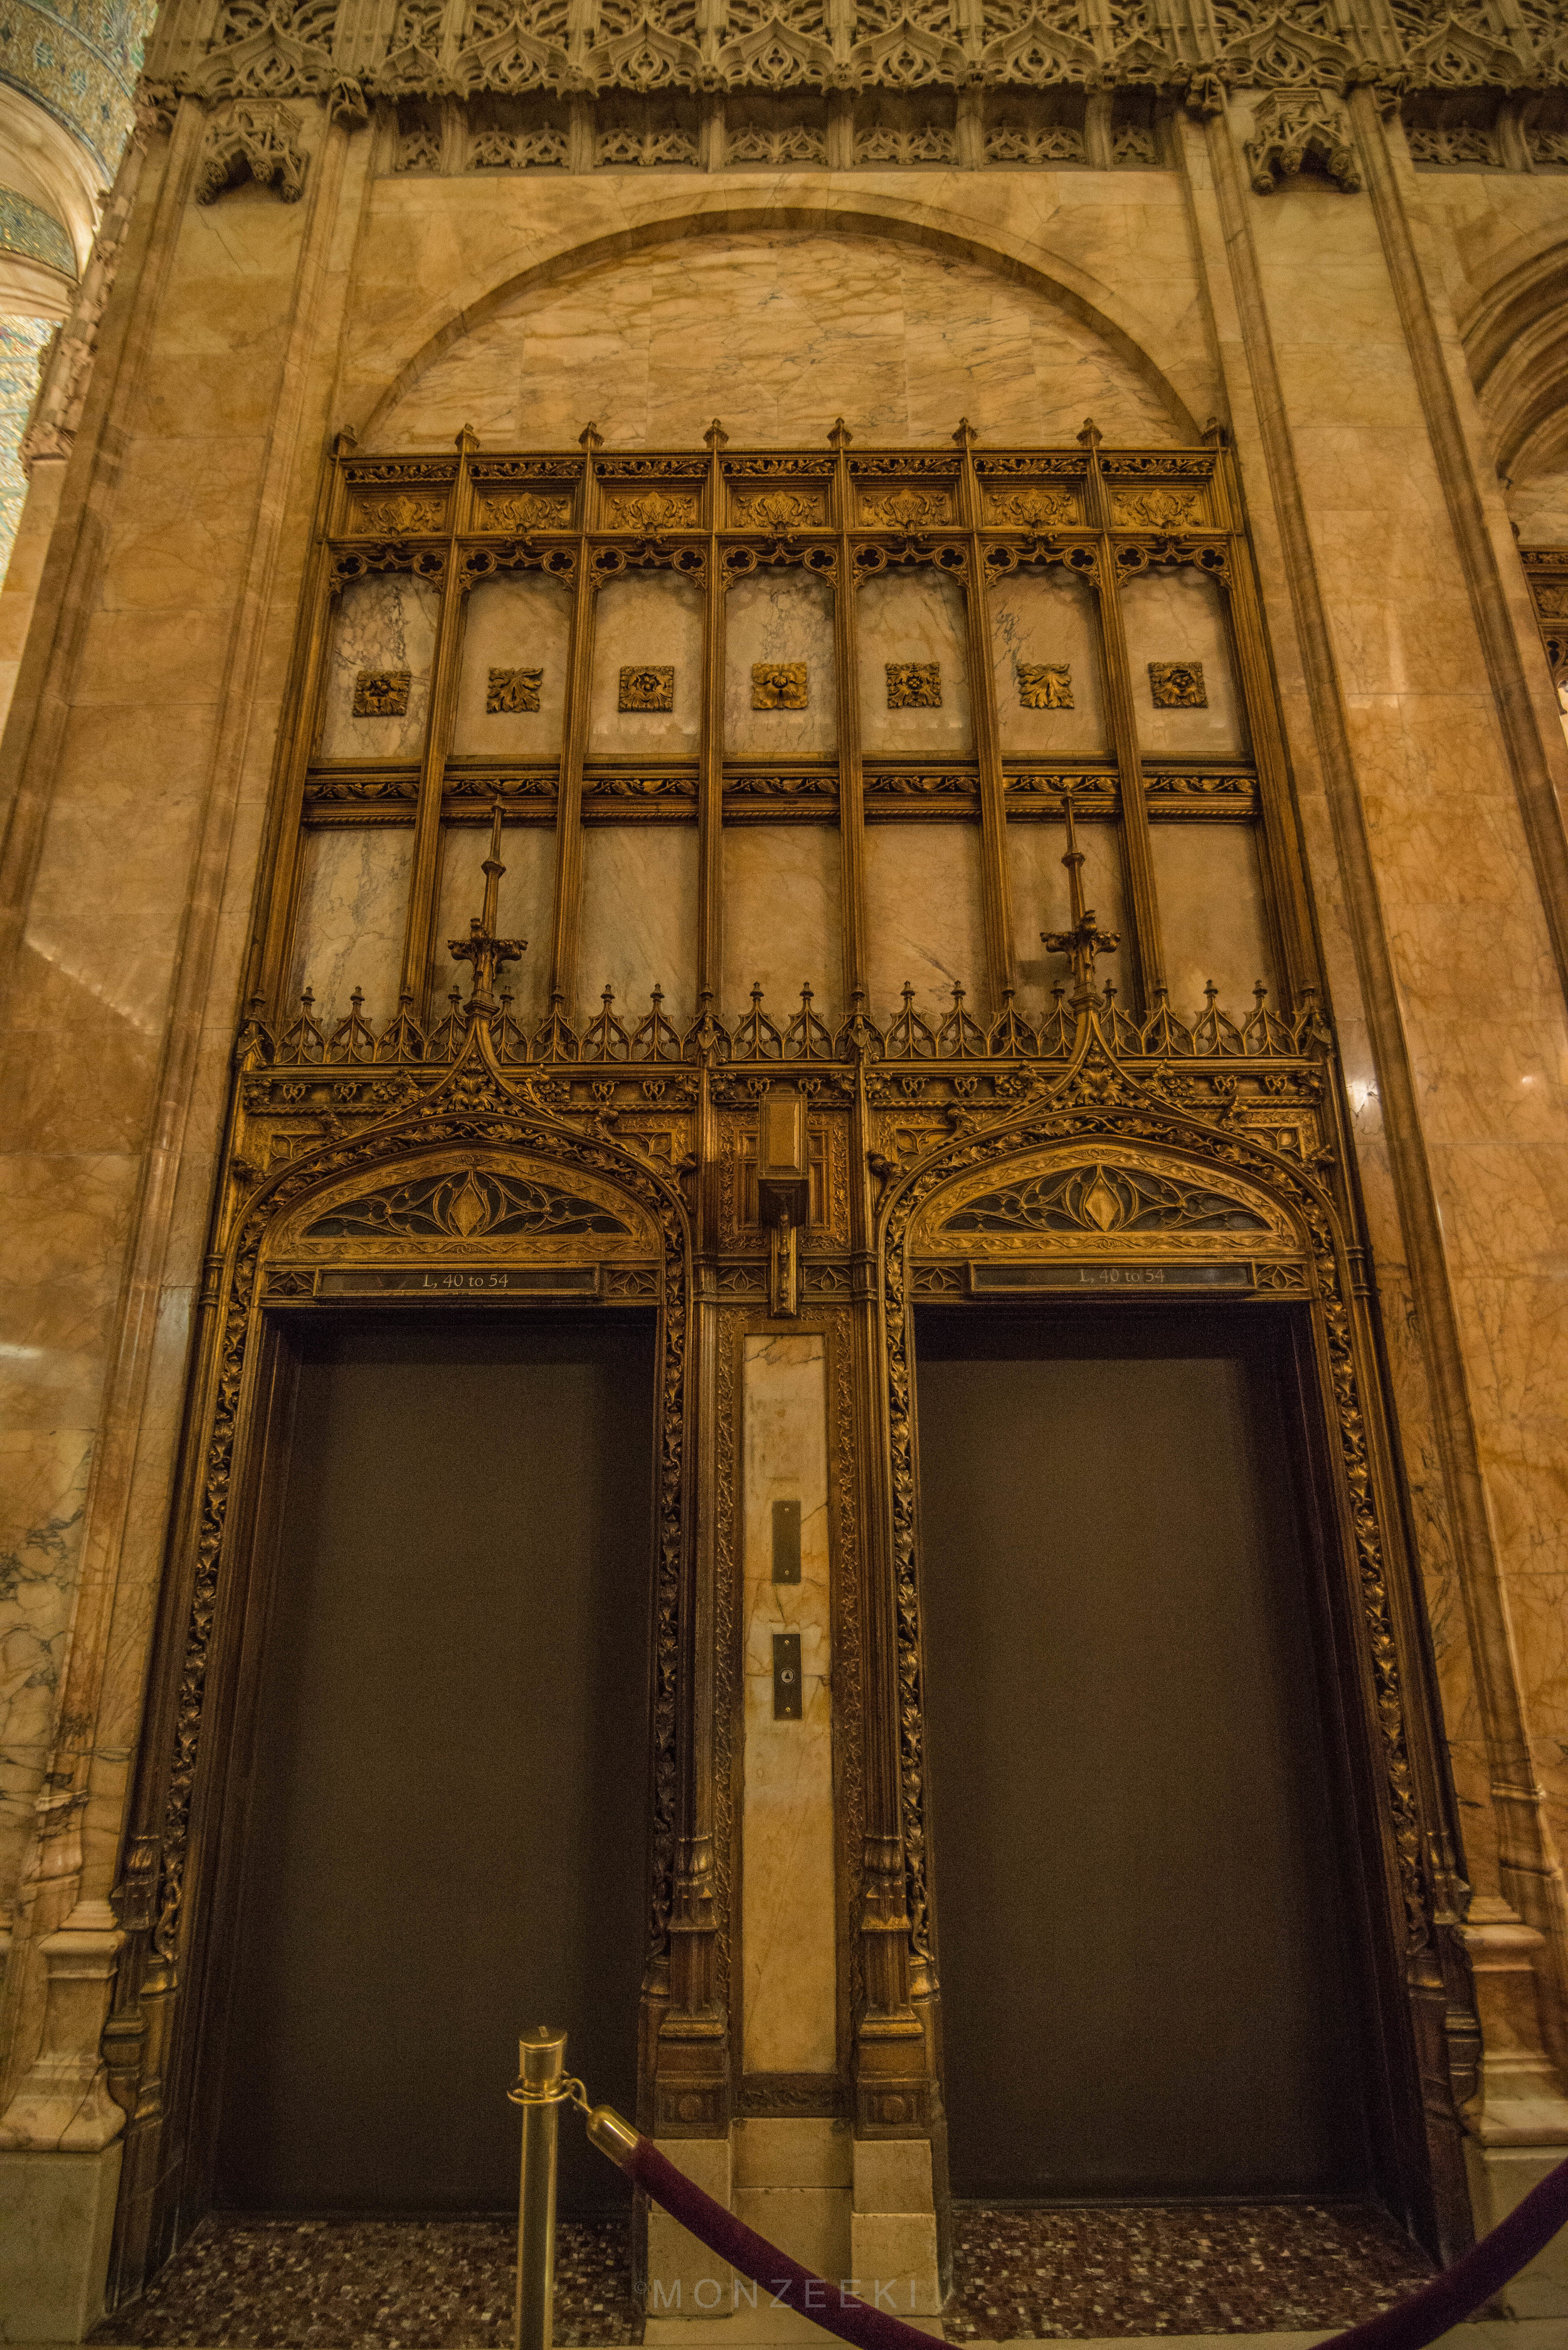 20151121-Woolworth-Bldg-1271.jpg